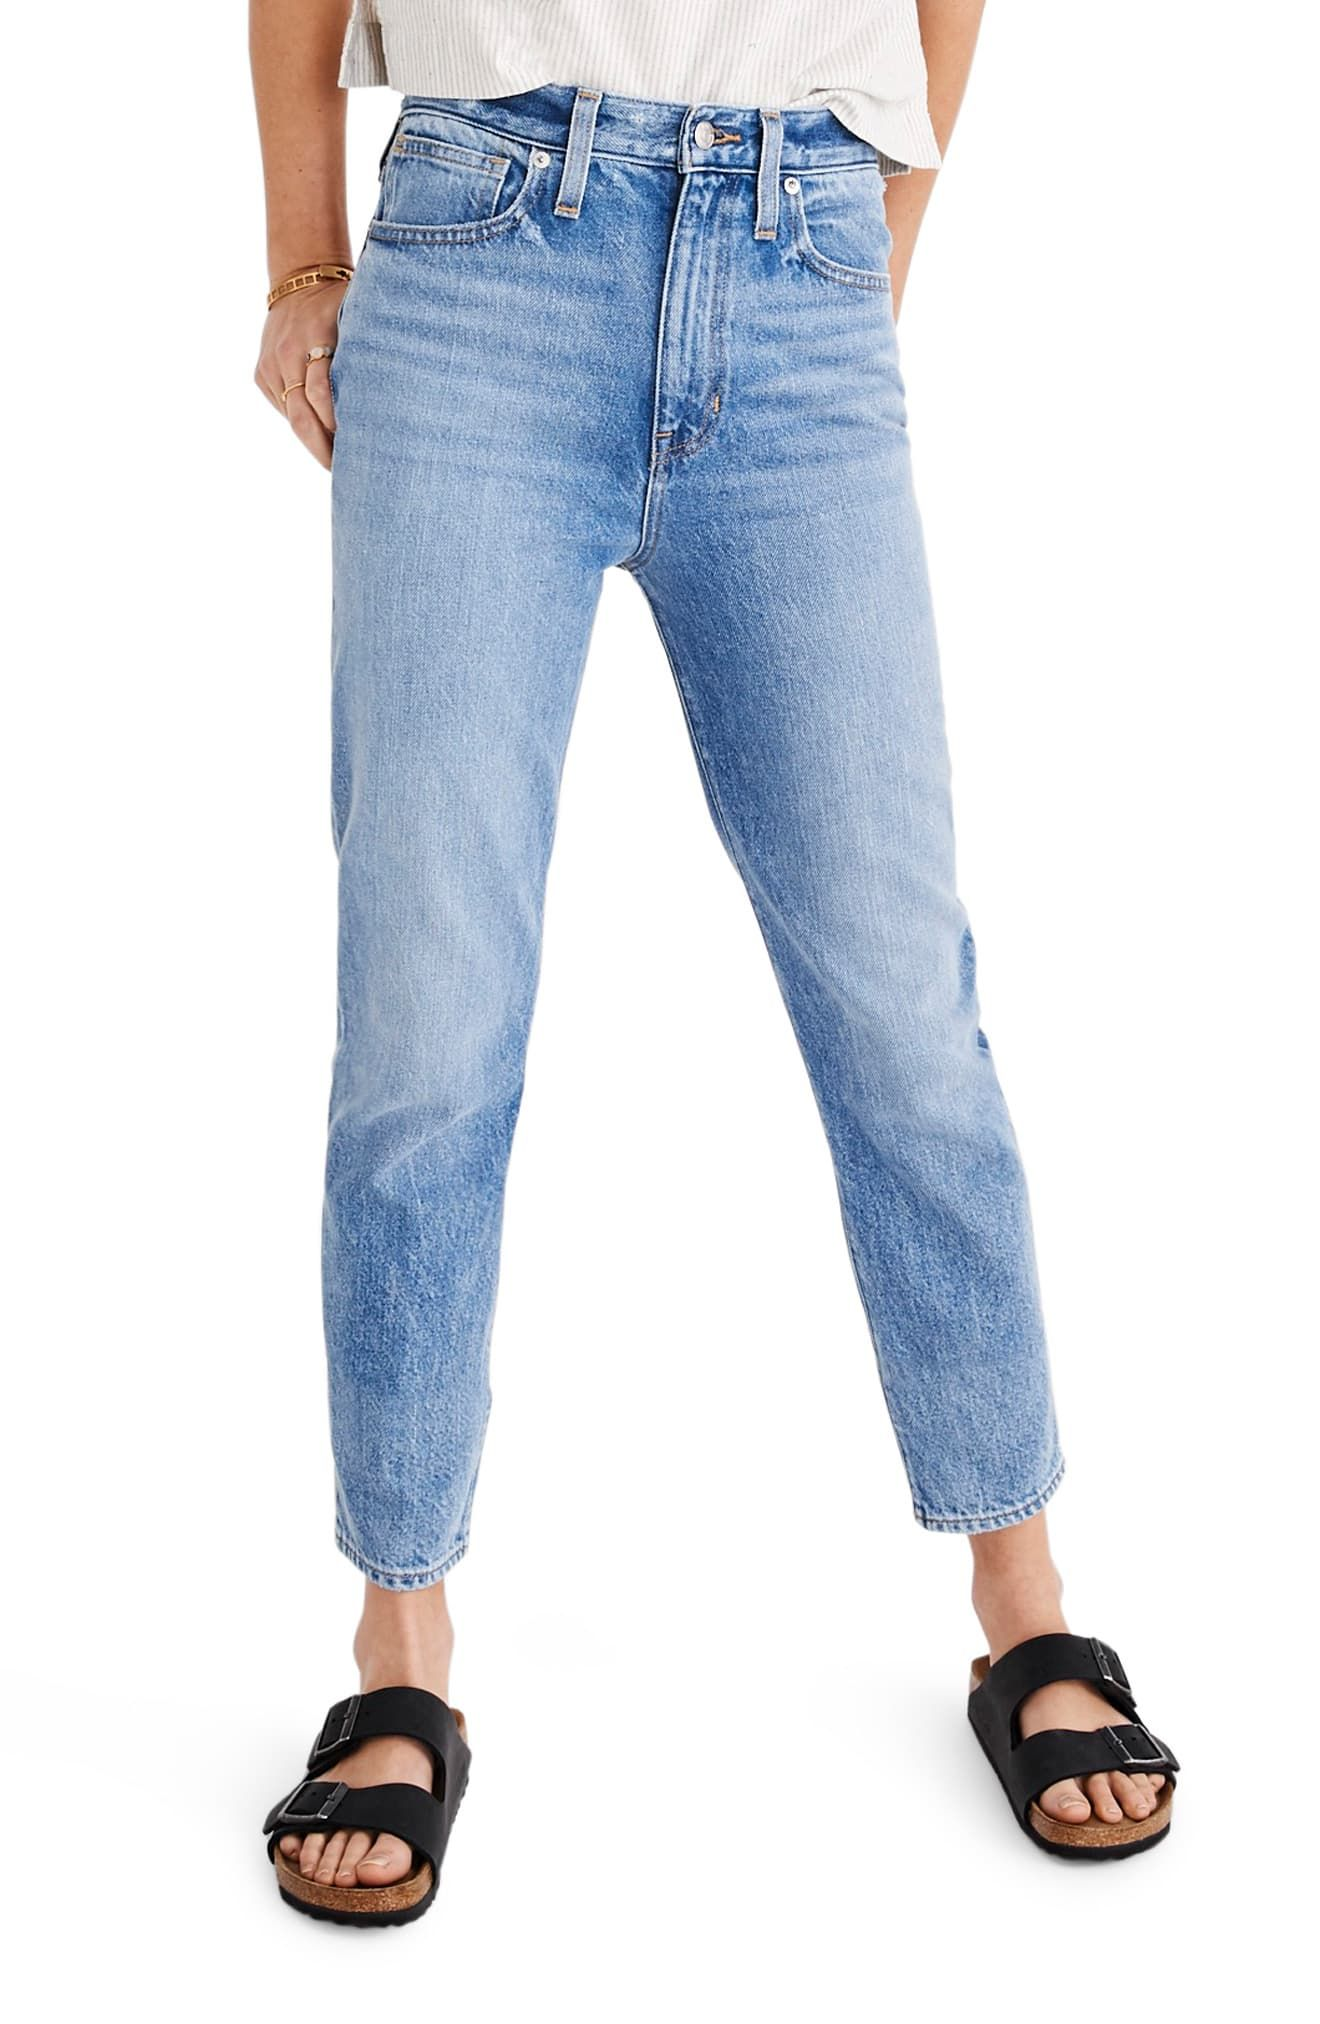 050a45bda09fbb Madewell The Momjean High Waist Jeans in 2019 | Products | High ...